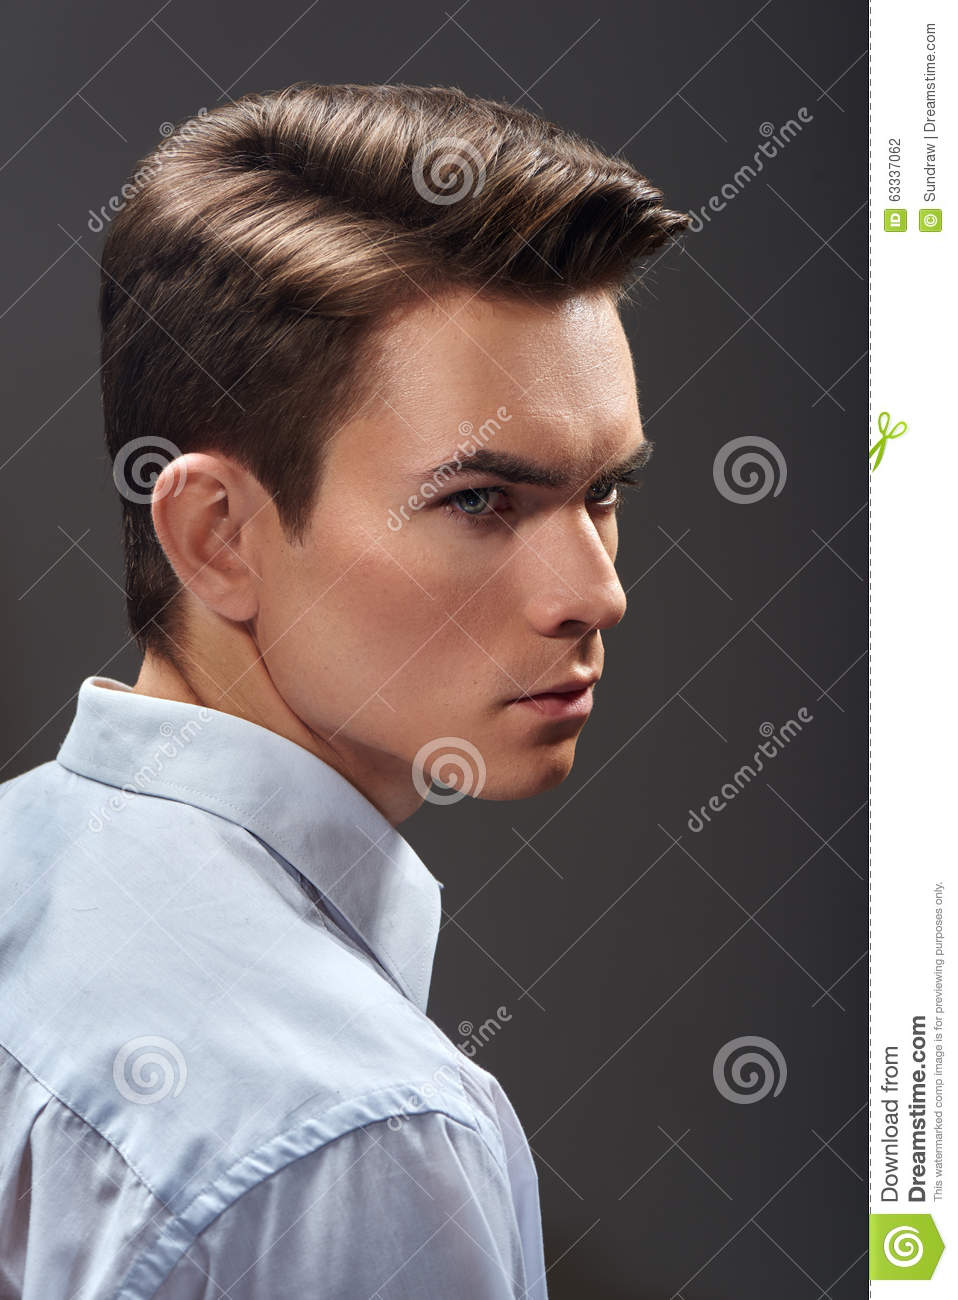 jeune homme beau avec la coupe de cheveux de mode photo stock image du confiant occasionnel. Black Bedroom Furniture Sets. Home Design Ideas